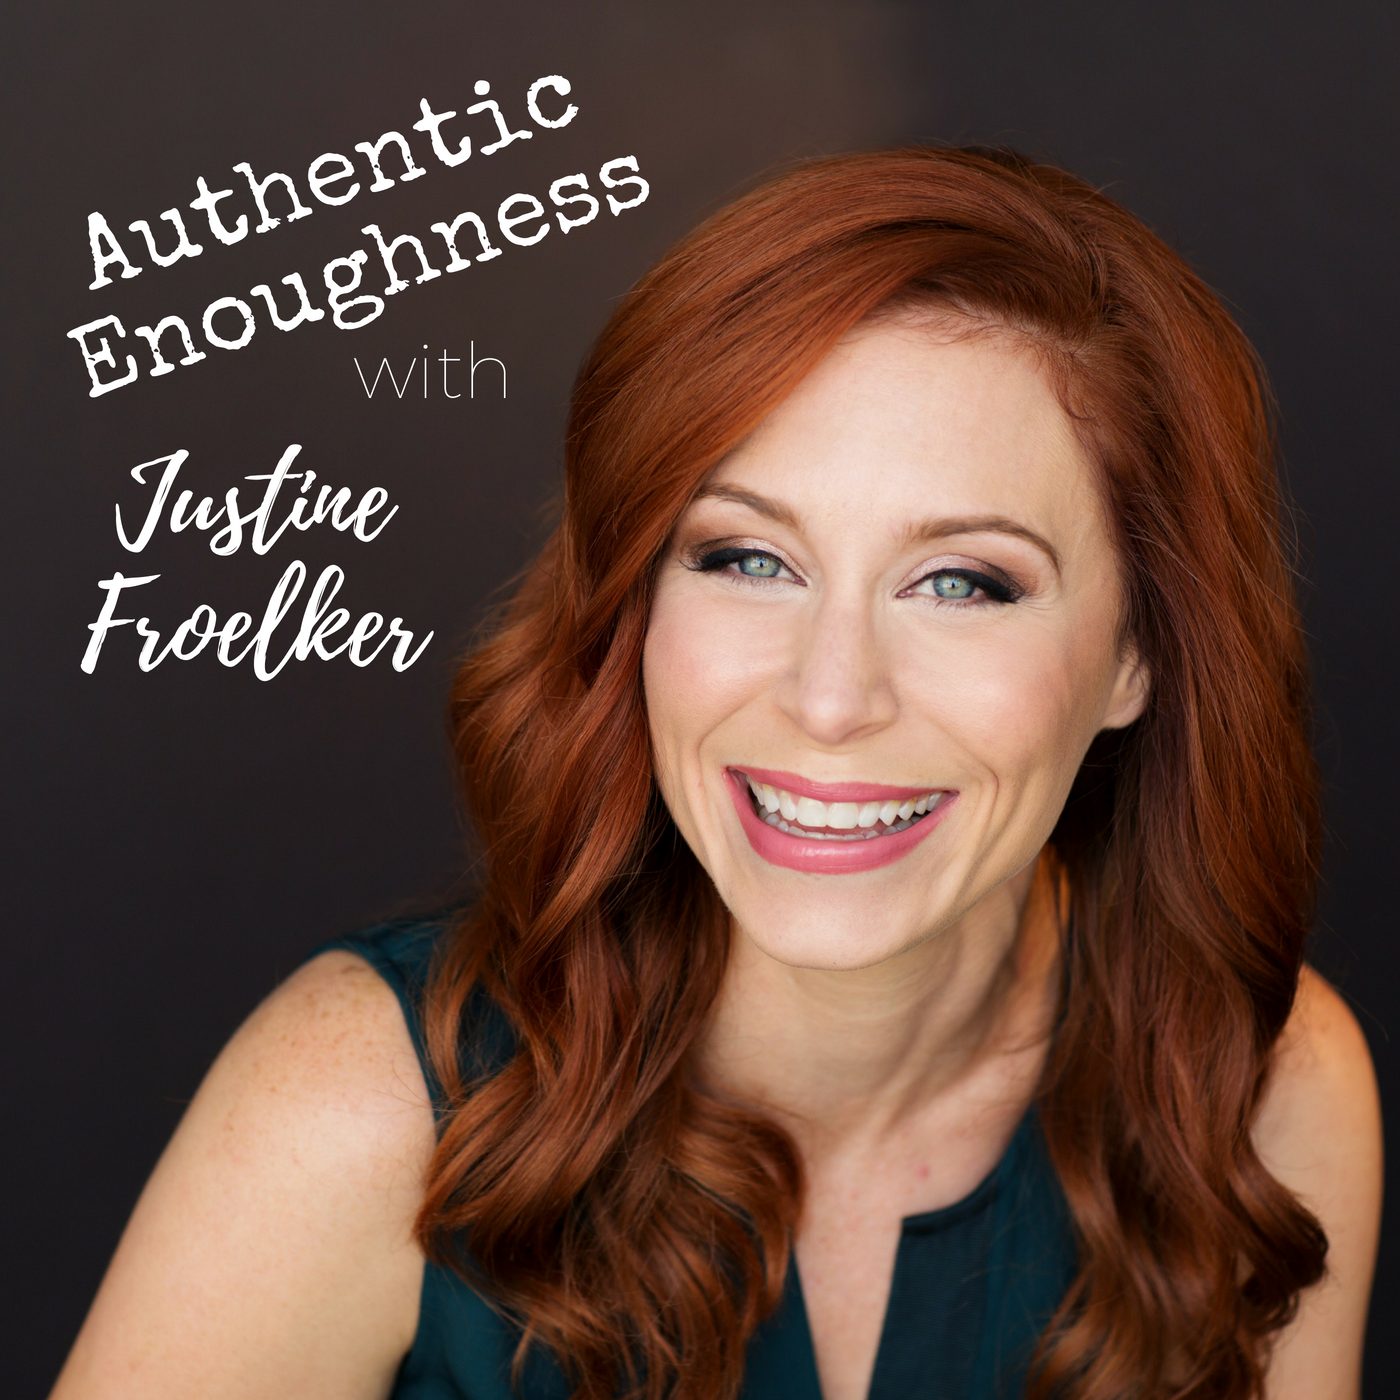 Amd Don't forget justine's podcast!  With her raw humor, passionate teaching, and real alotness, Justine will challenge your old thinking, make you laugh, and show you ways to change your life.   Self-Care, Grief, faith, and much more!